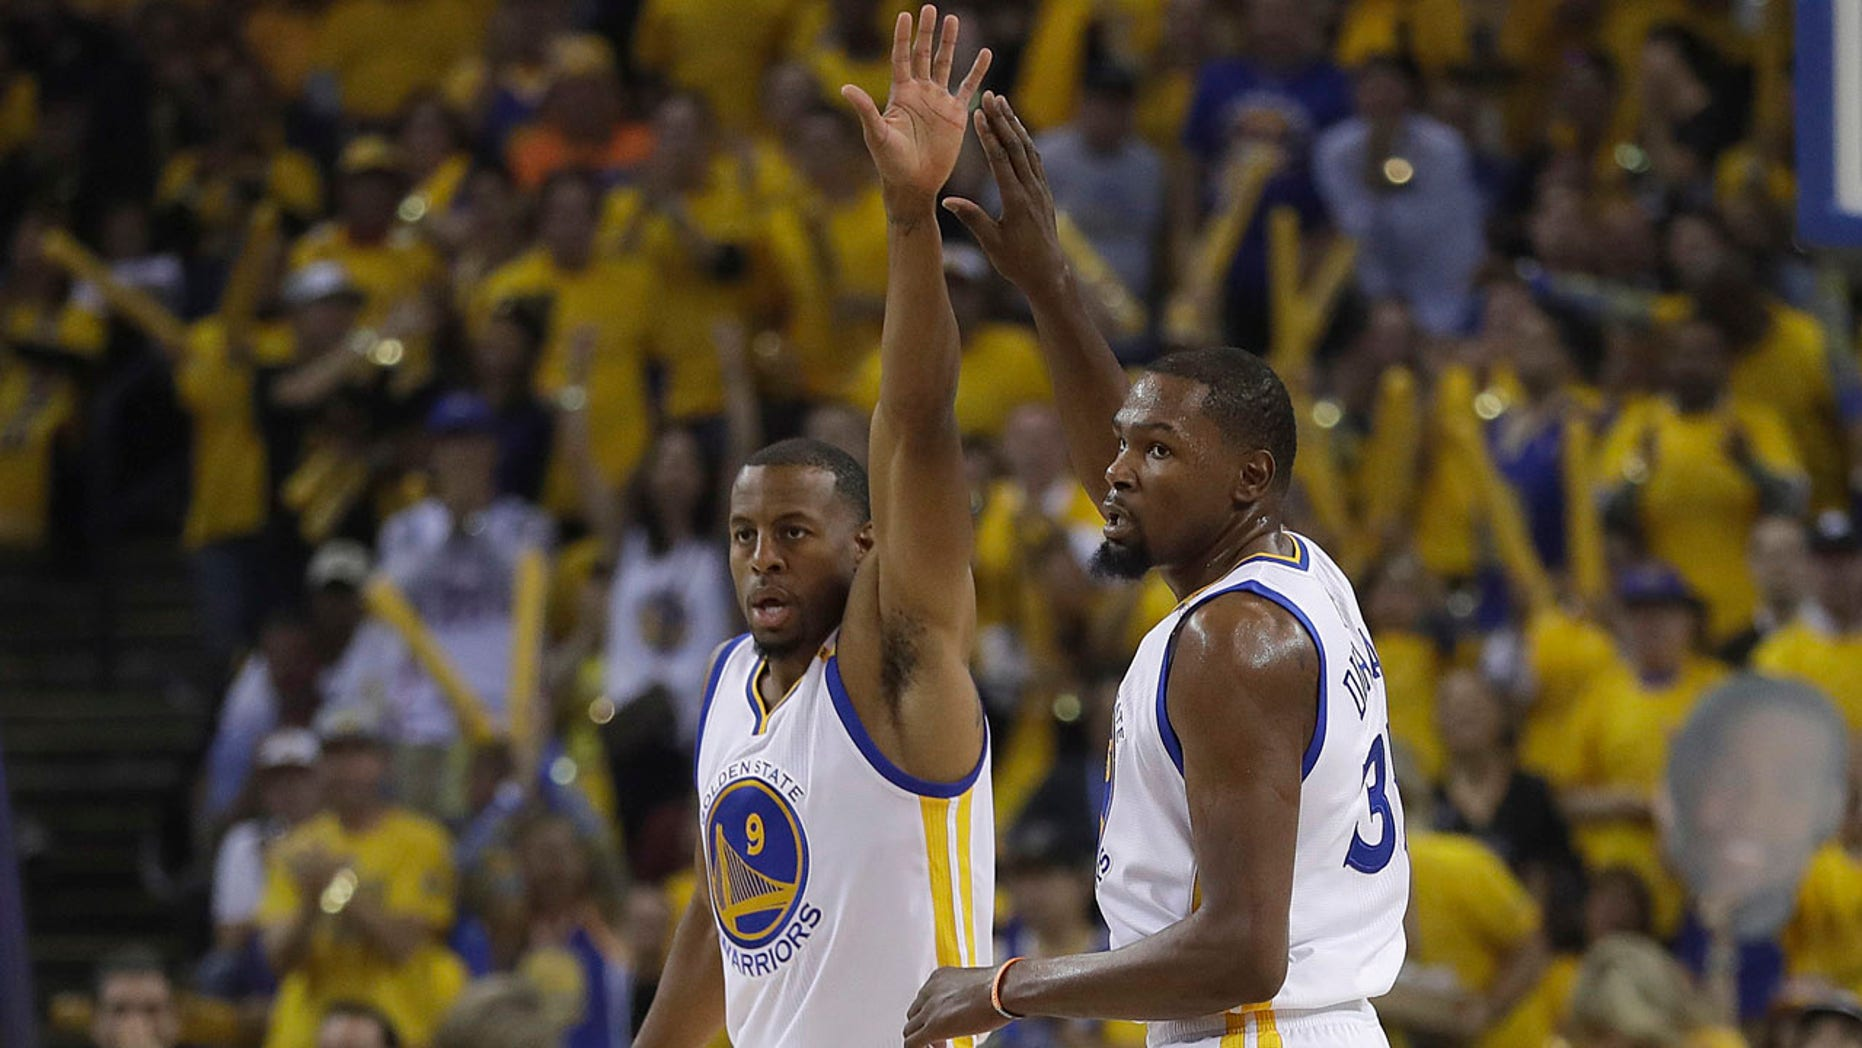 Golden State Warriors forward Andre Iguodala (9) and forward Kevin Durant (35) react after scoring against the Cleveland Cavaliers during the first half of Game 1 of basketball's NBA Finals in Oakland, Calif., Thursday, June 1, 2017. (AP Photo/Marcio Jose Sanchez)